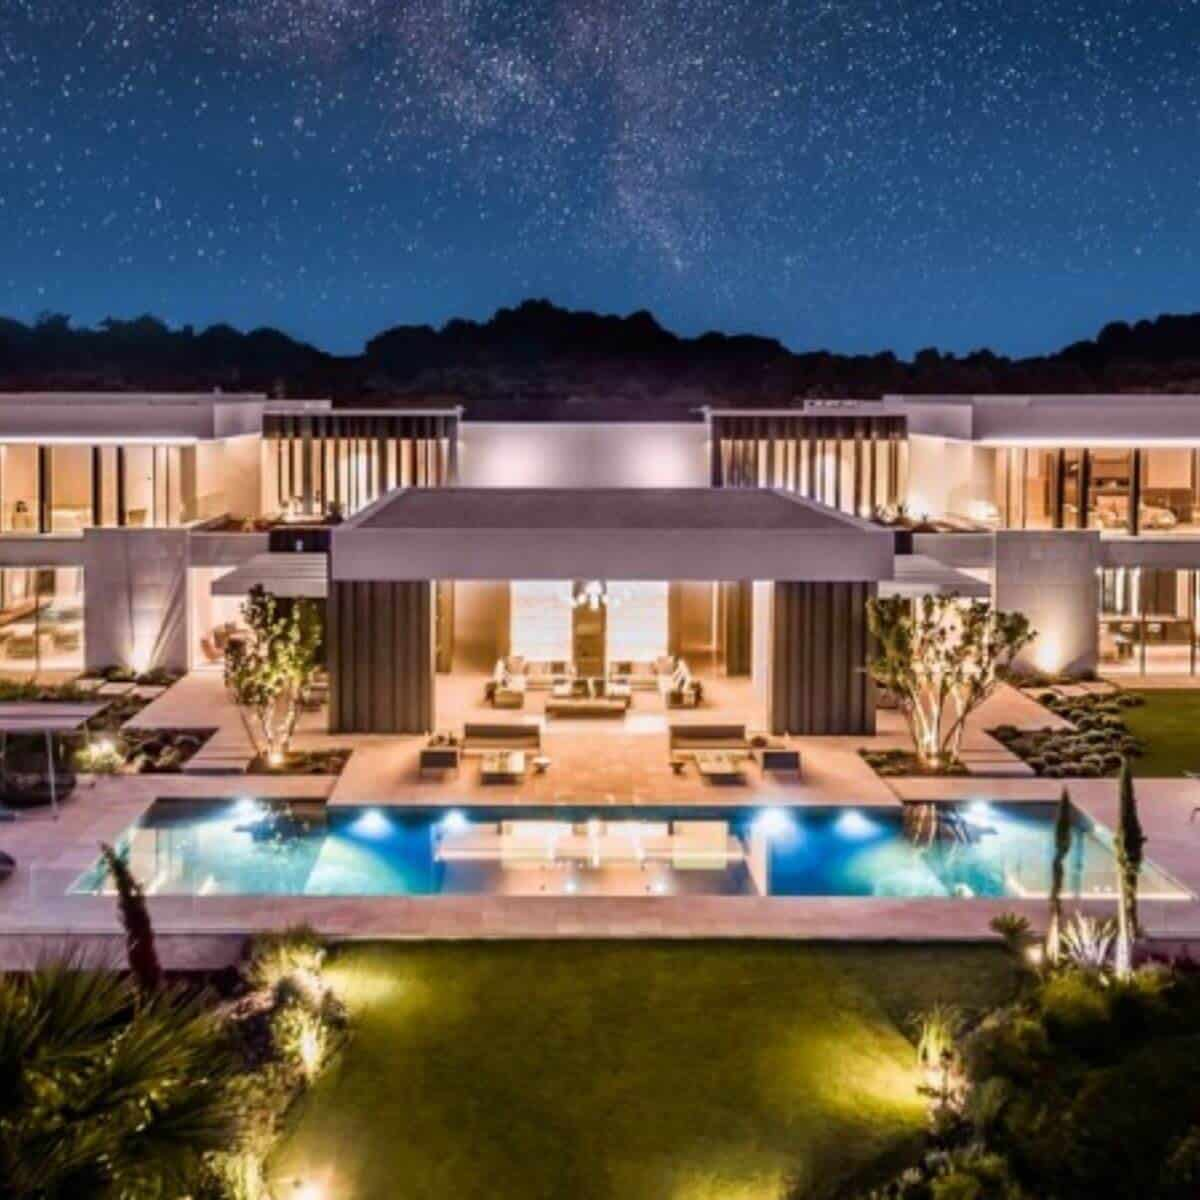 White and grey modern mansion in front of the mountains and stars.